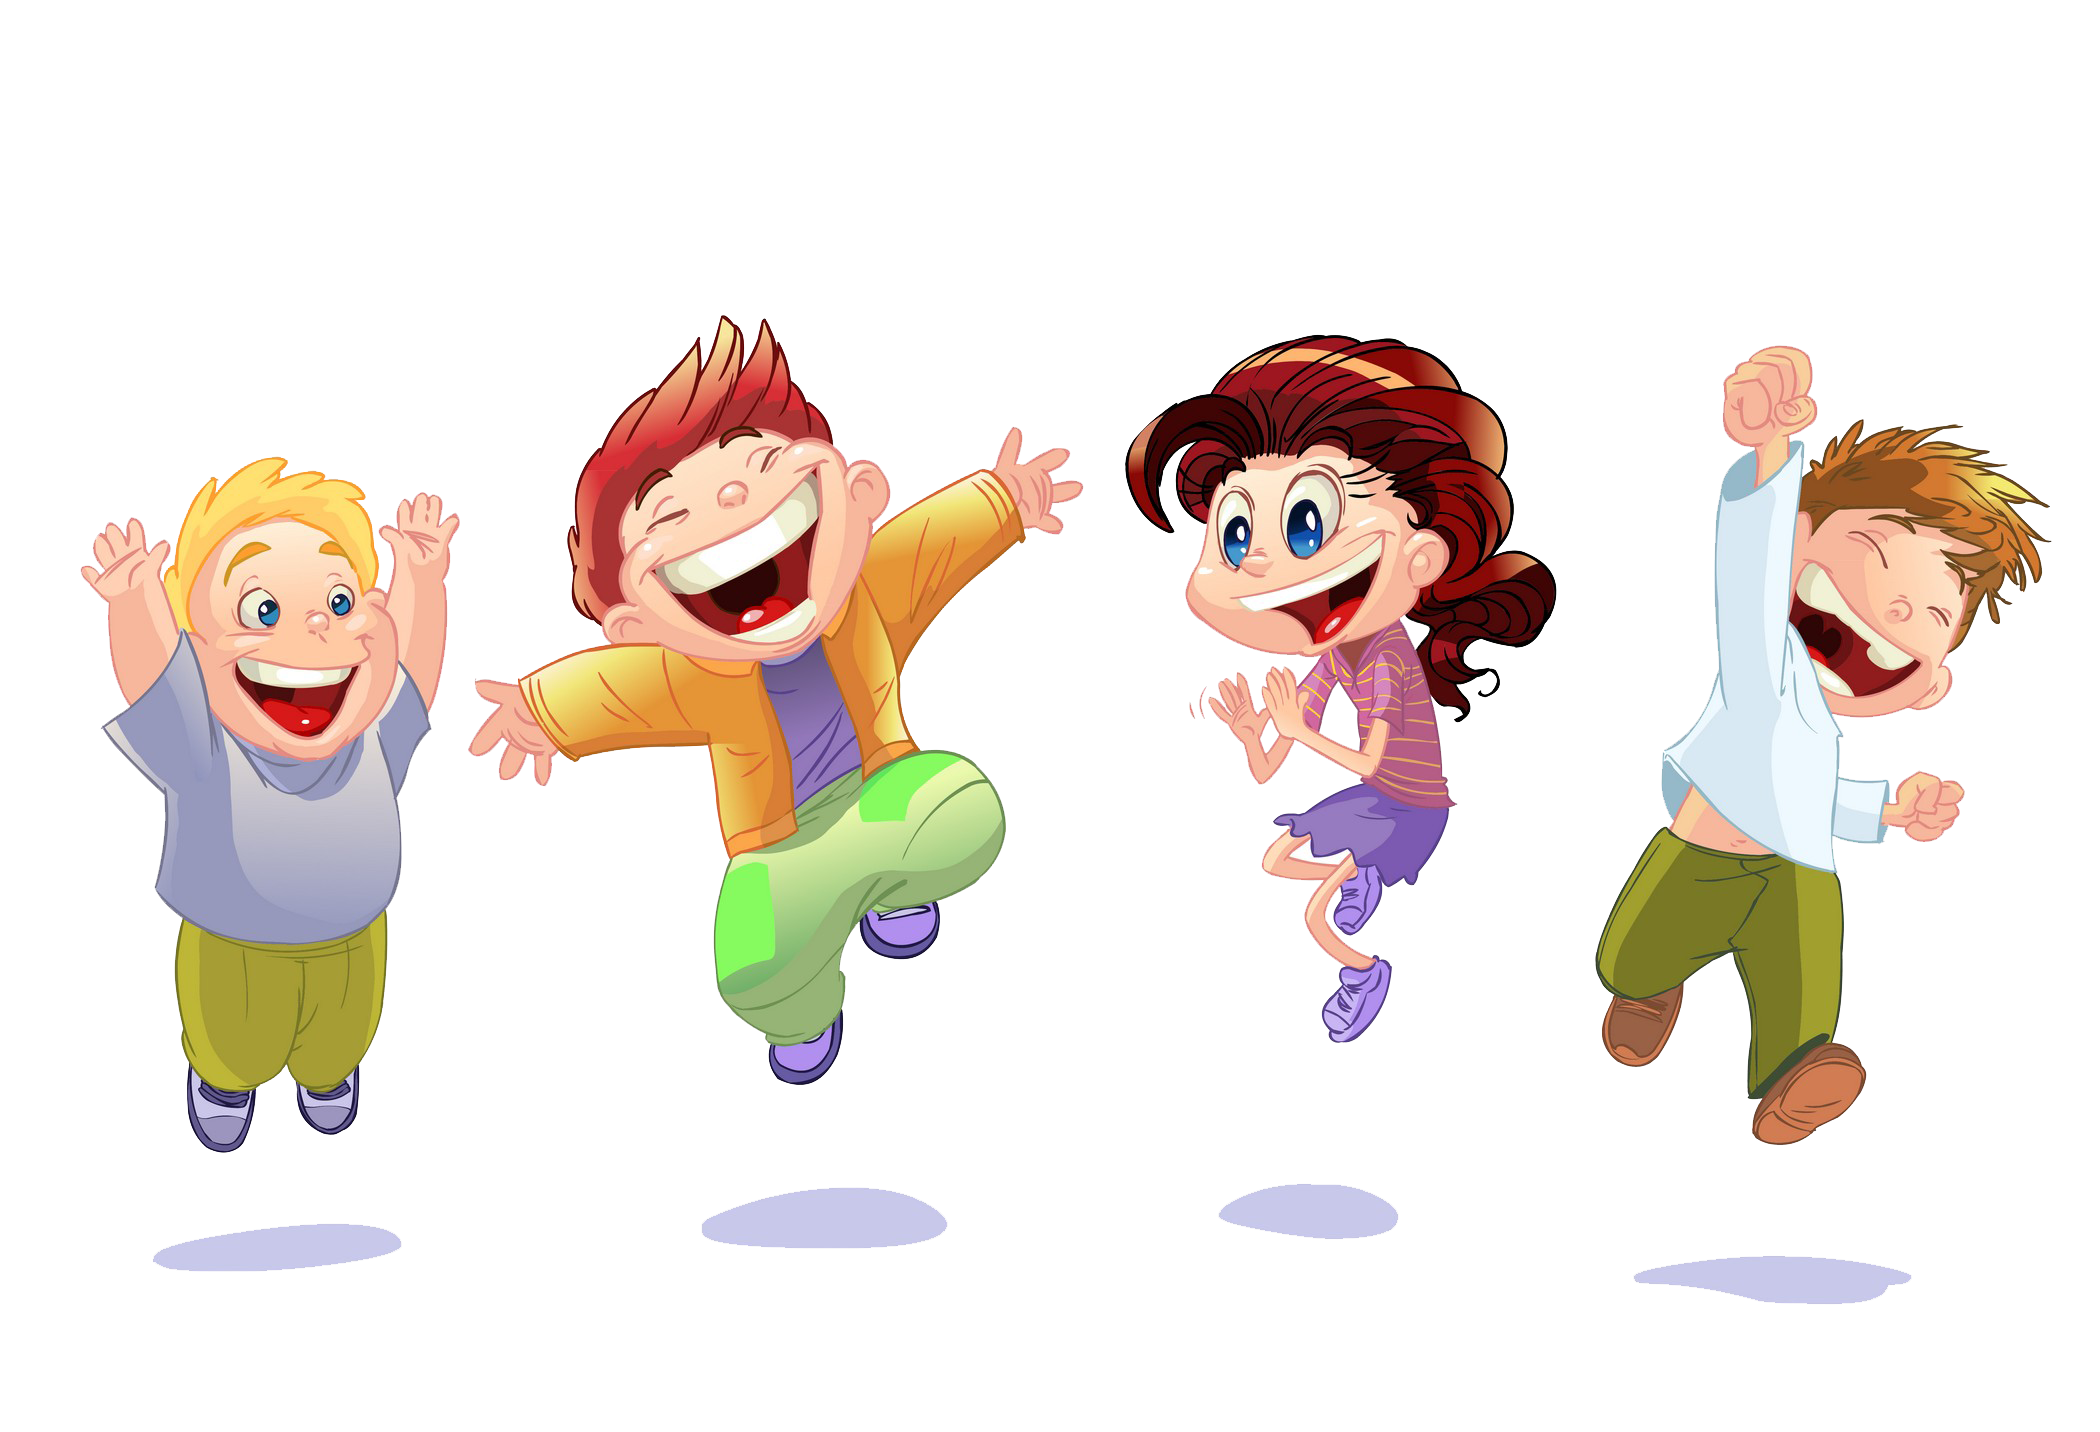 Kids transparent background. Cute png image mart